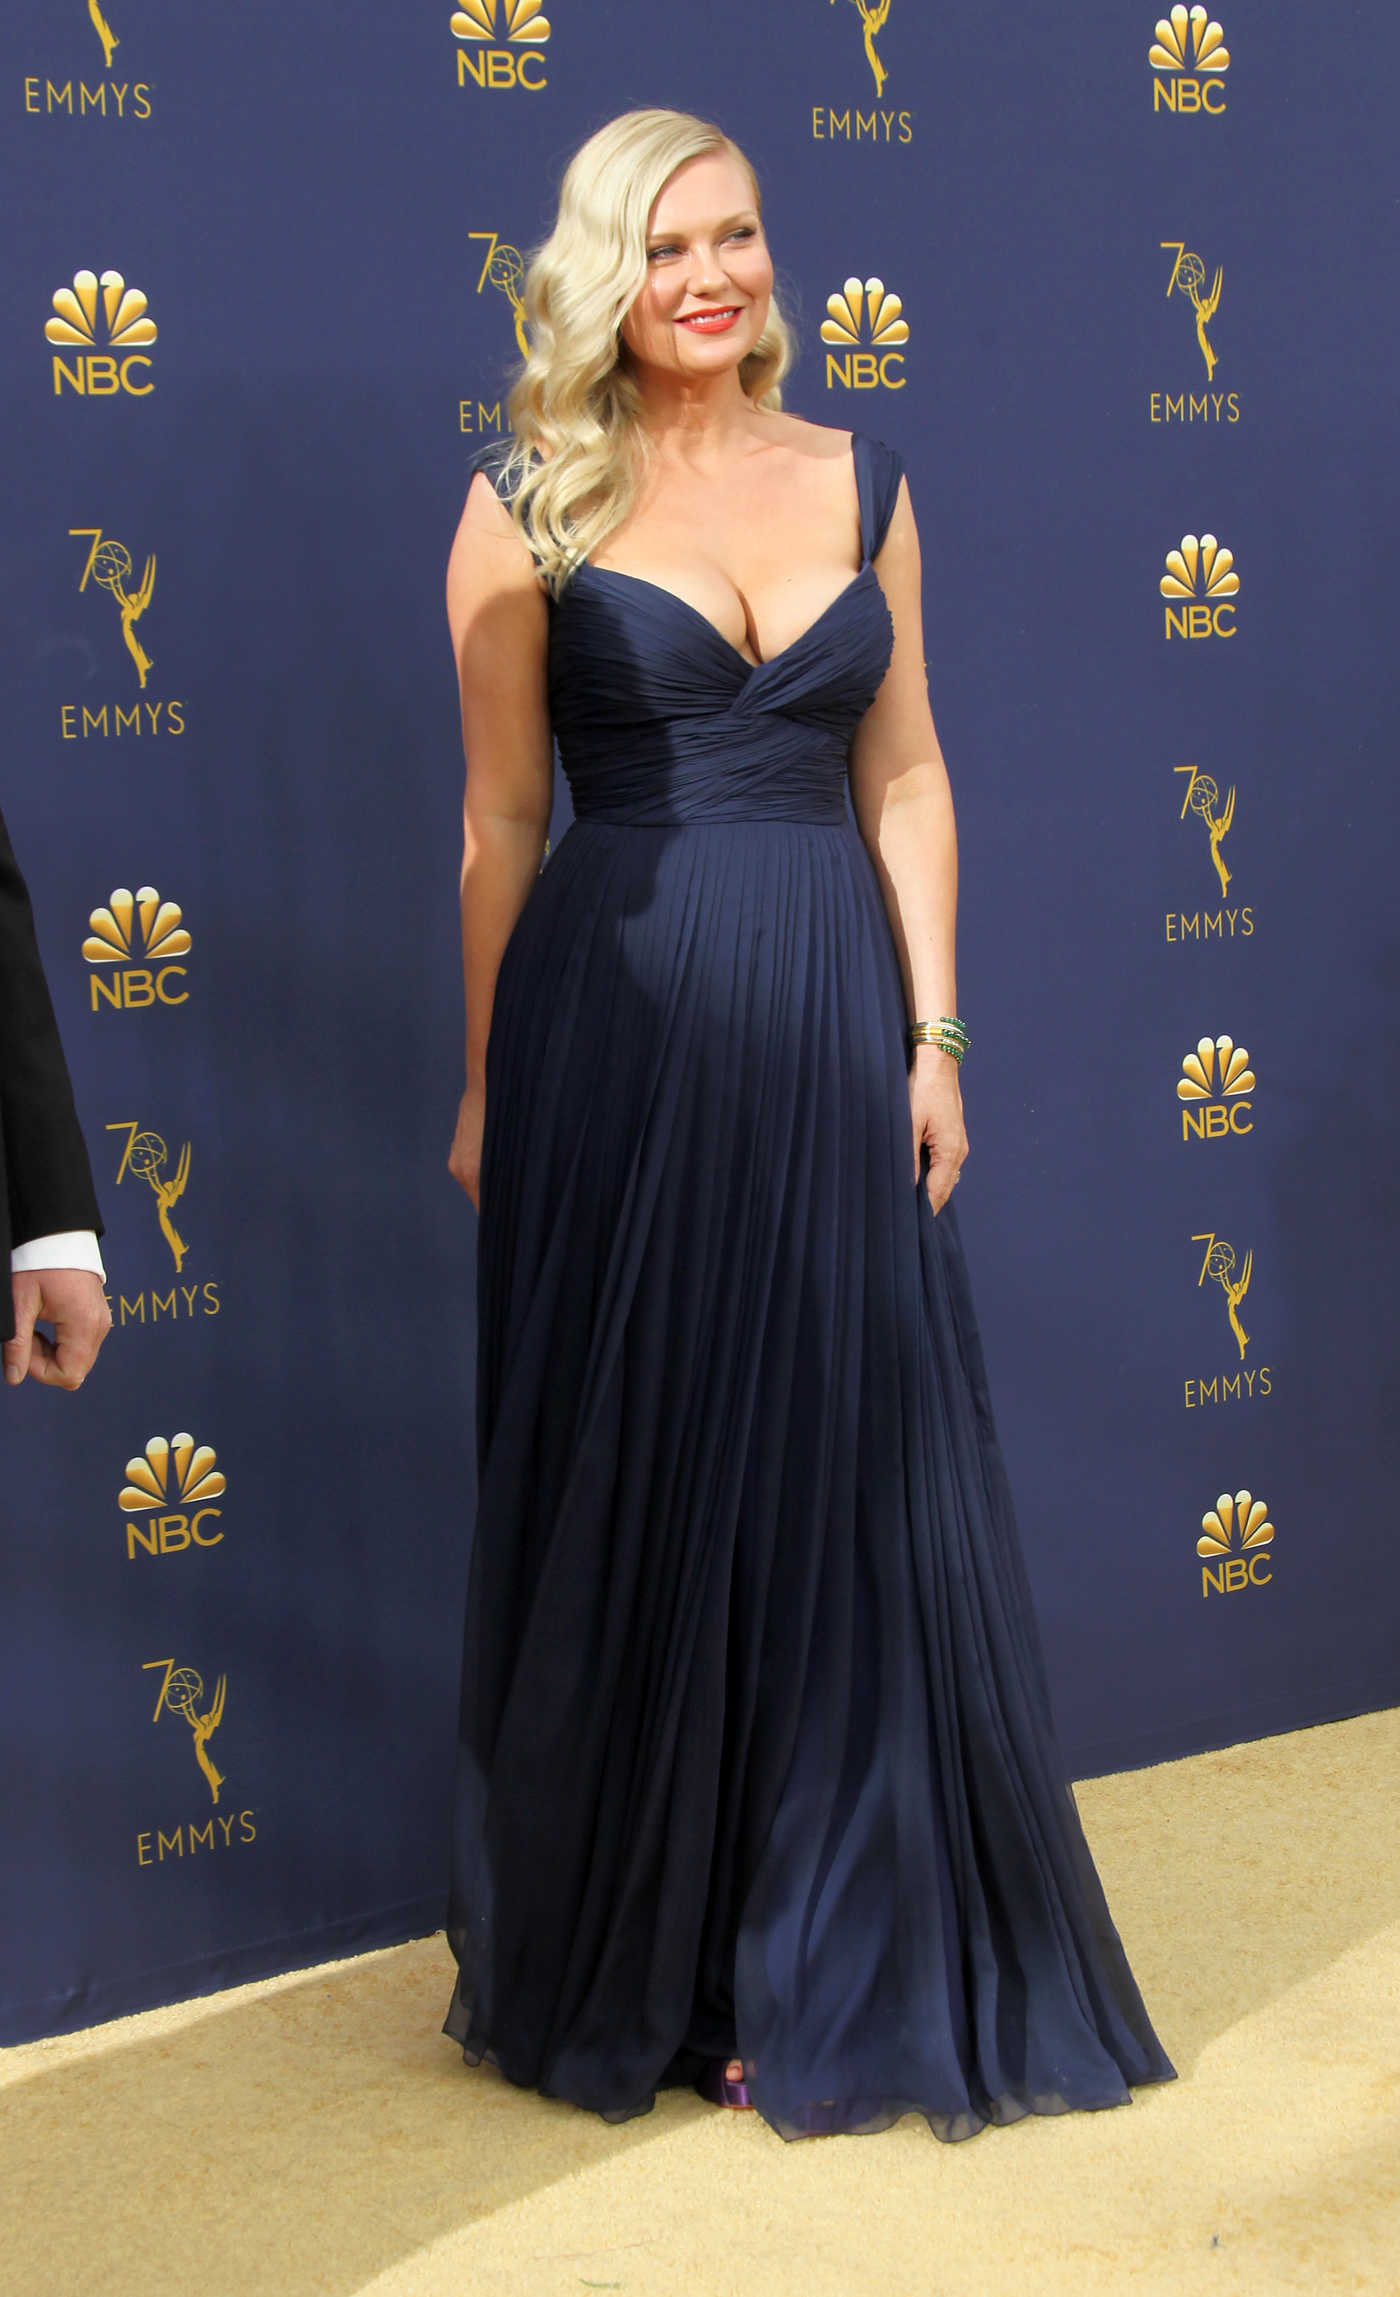 Kirsten Dunst at the 70th Primetime Emmy Awards in LA 09/17/2018